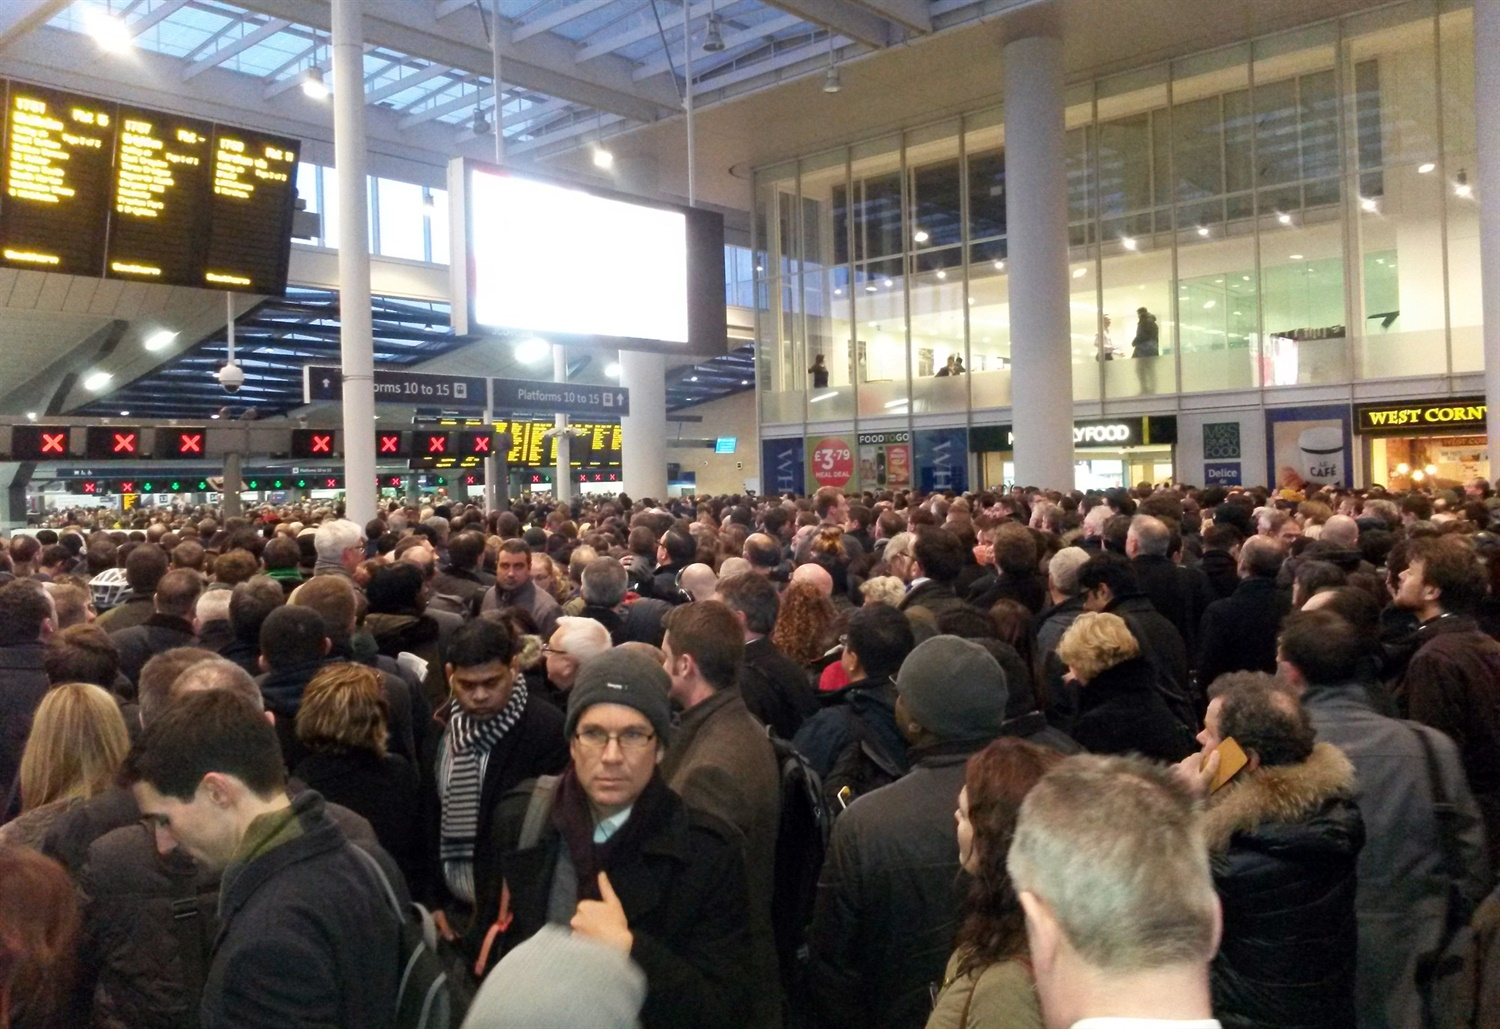 DfT confirms it will not implement overcrowding limits on busy services